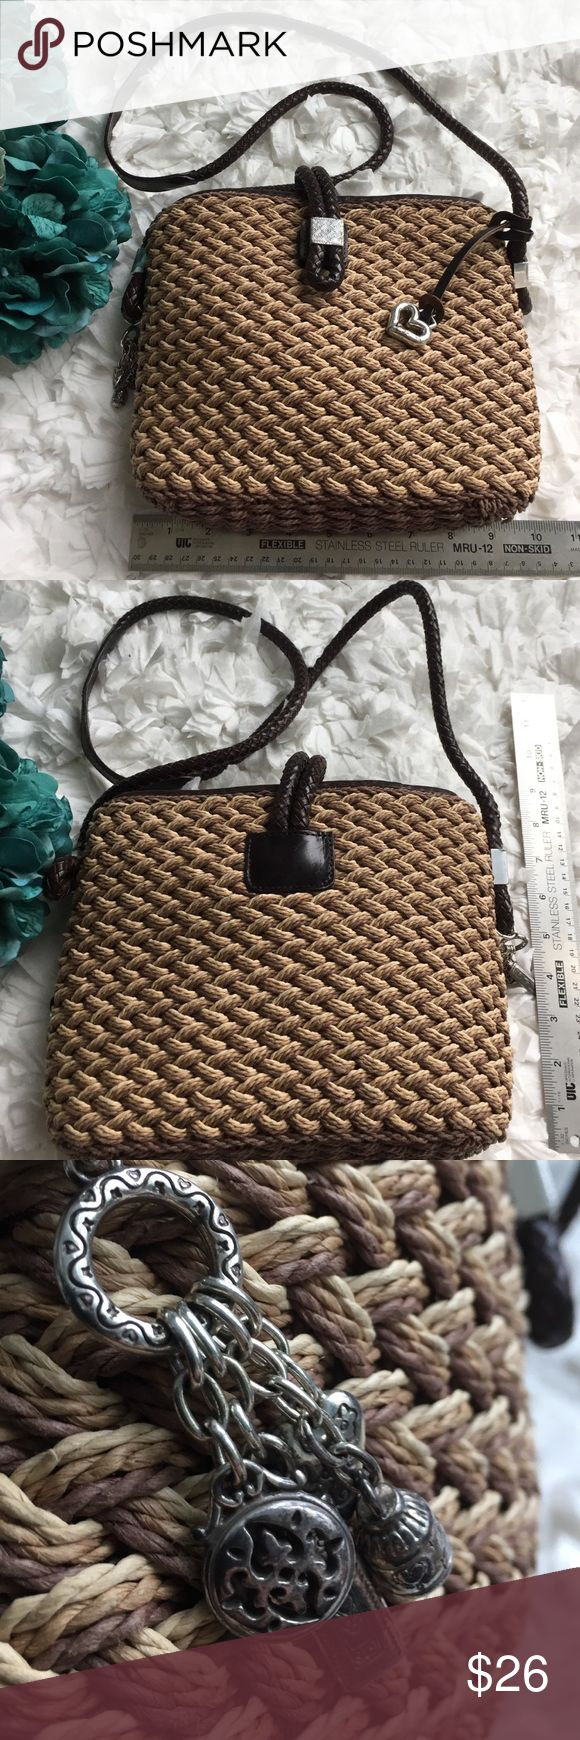 Brighton straw and leather purse w/darling lining Super cute Brighton purse in like new conditions. Trademark Brighton details w/charms and heart.  See close up to show woven detail. Brighton Bags Shoulder Bags